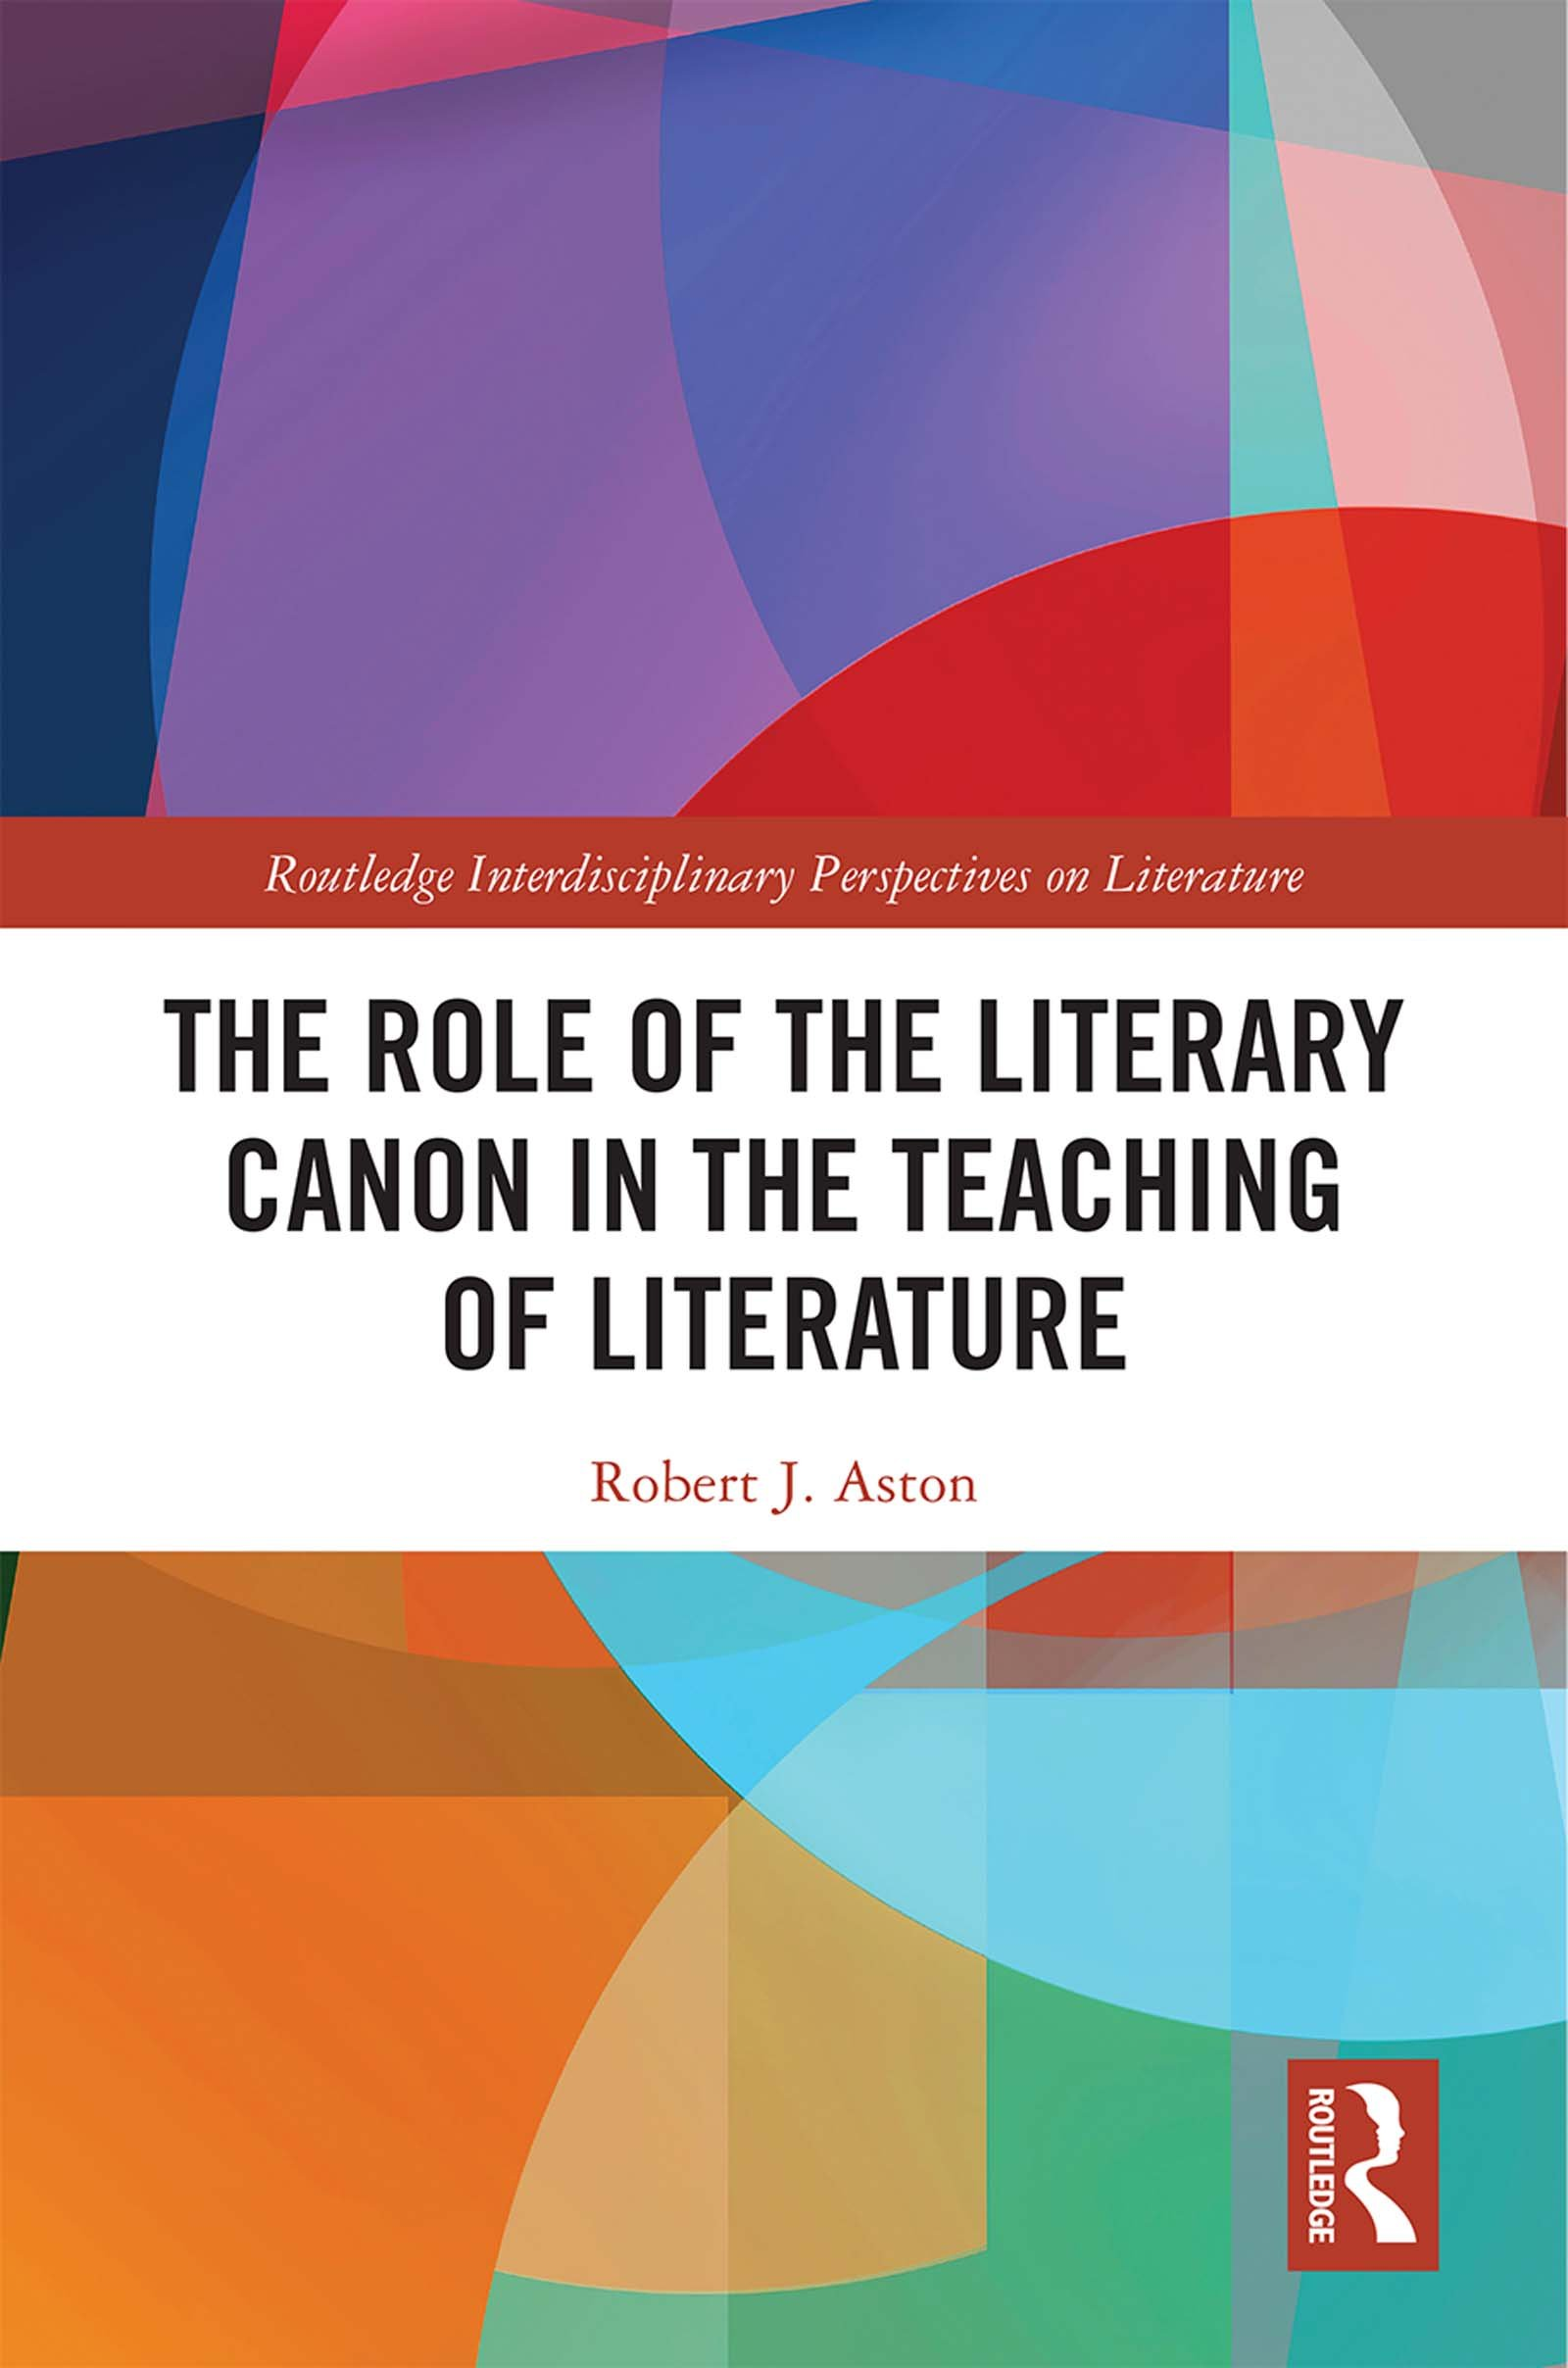 The Role of the Literary Canon in the Teaching of Literature